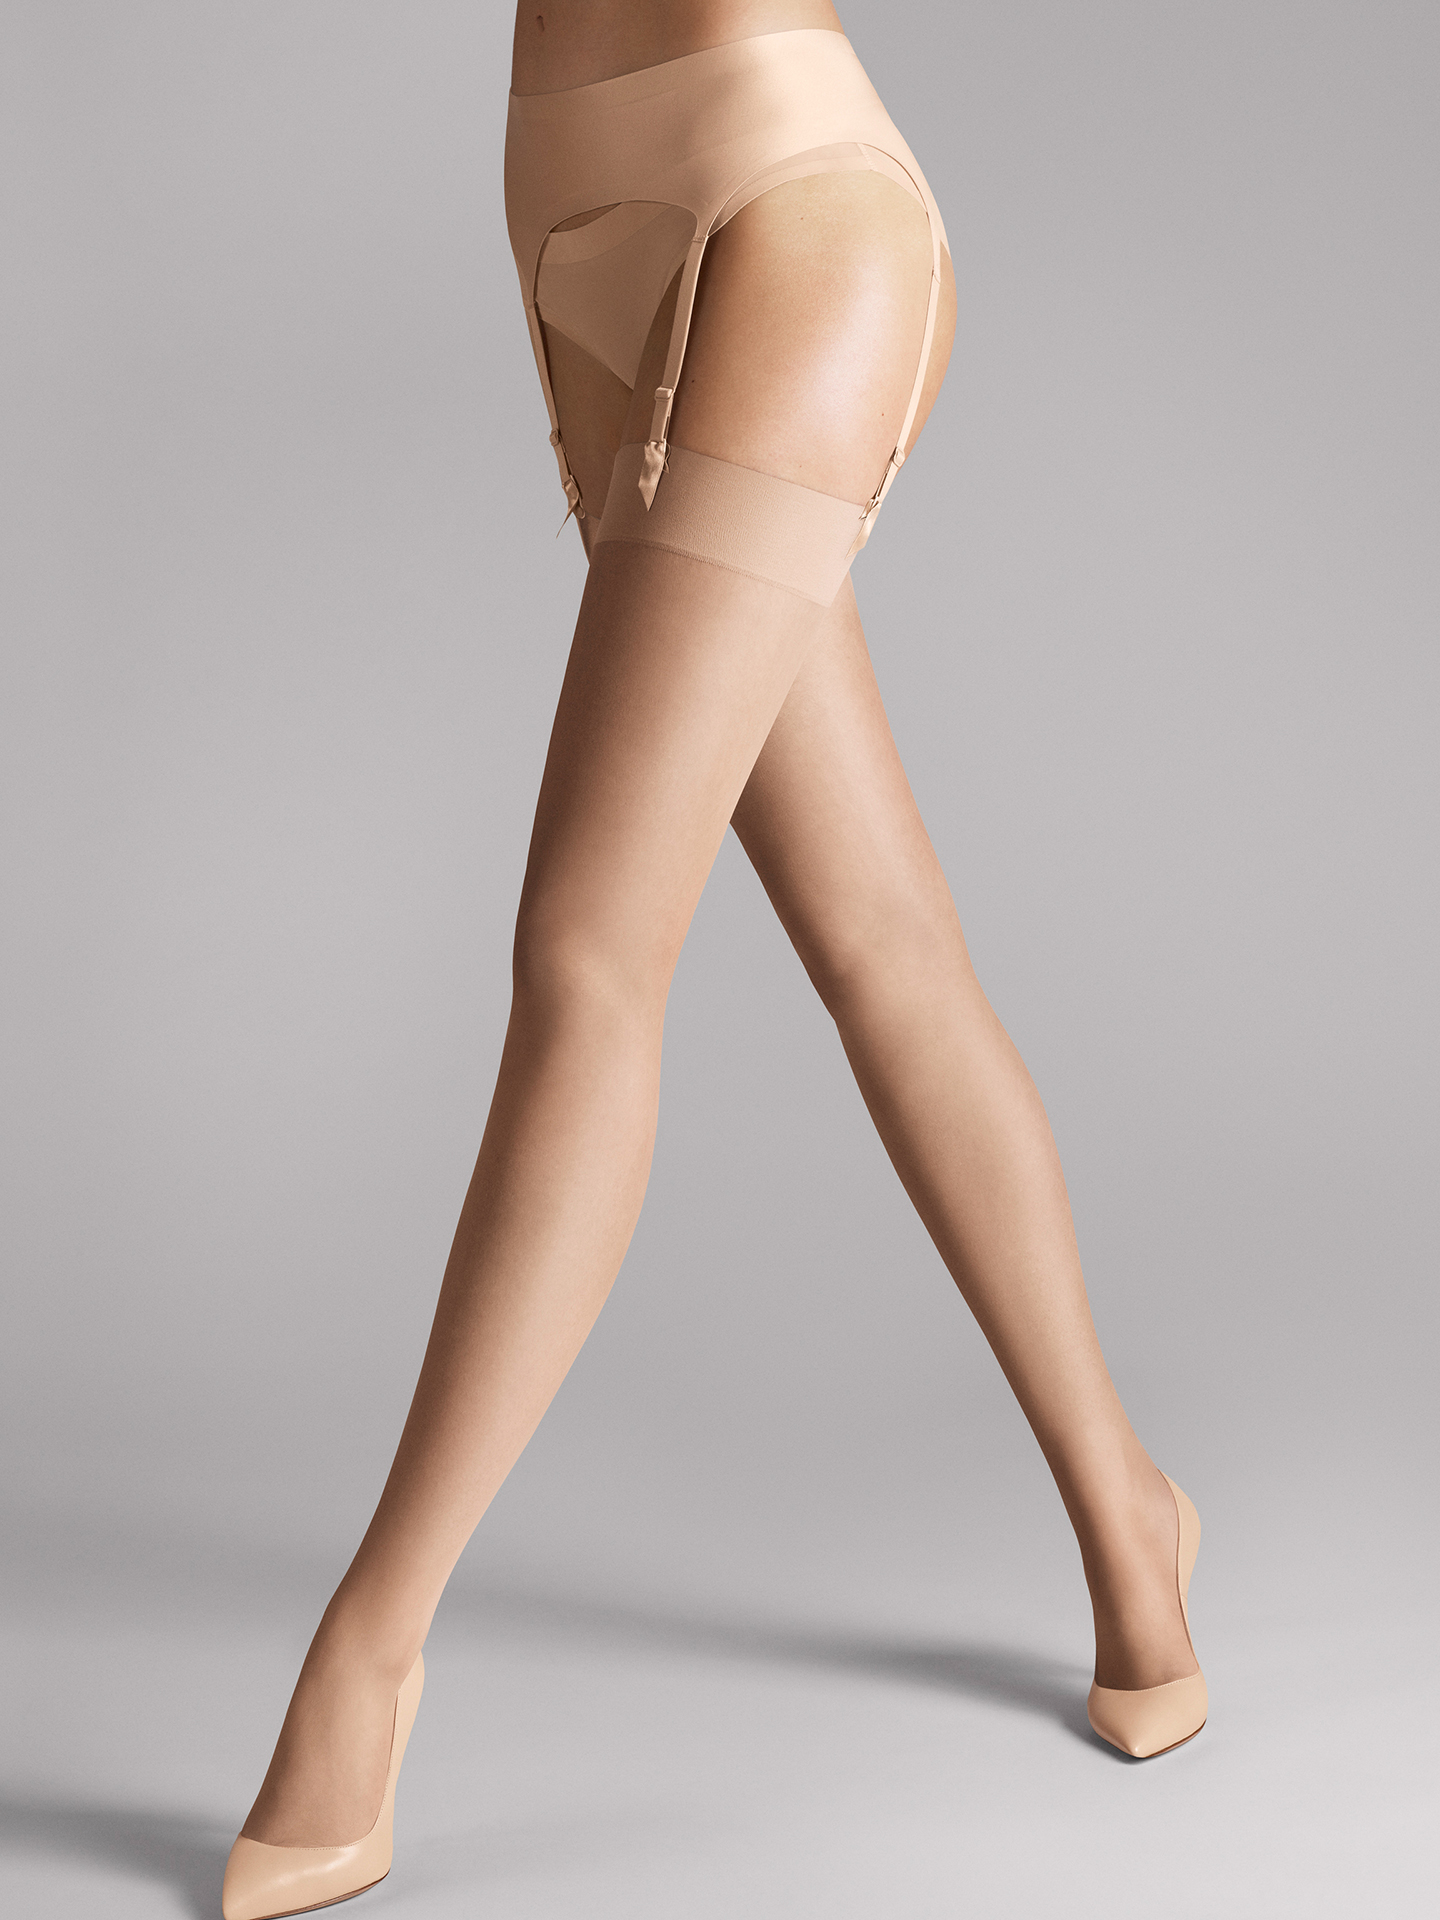 Wolford Apparel & Accessories > Clothing > Autoreggenti & Calze Individual 10 Stocking